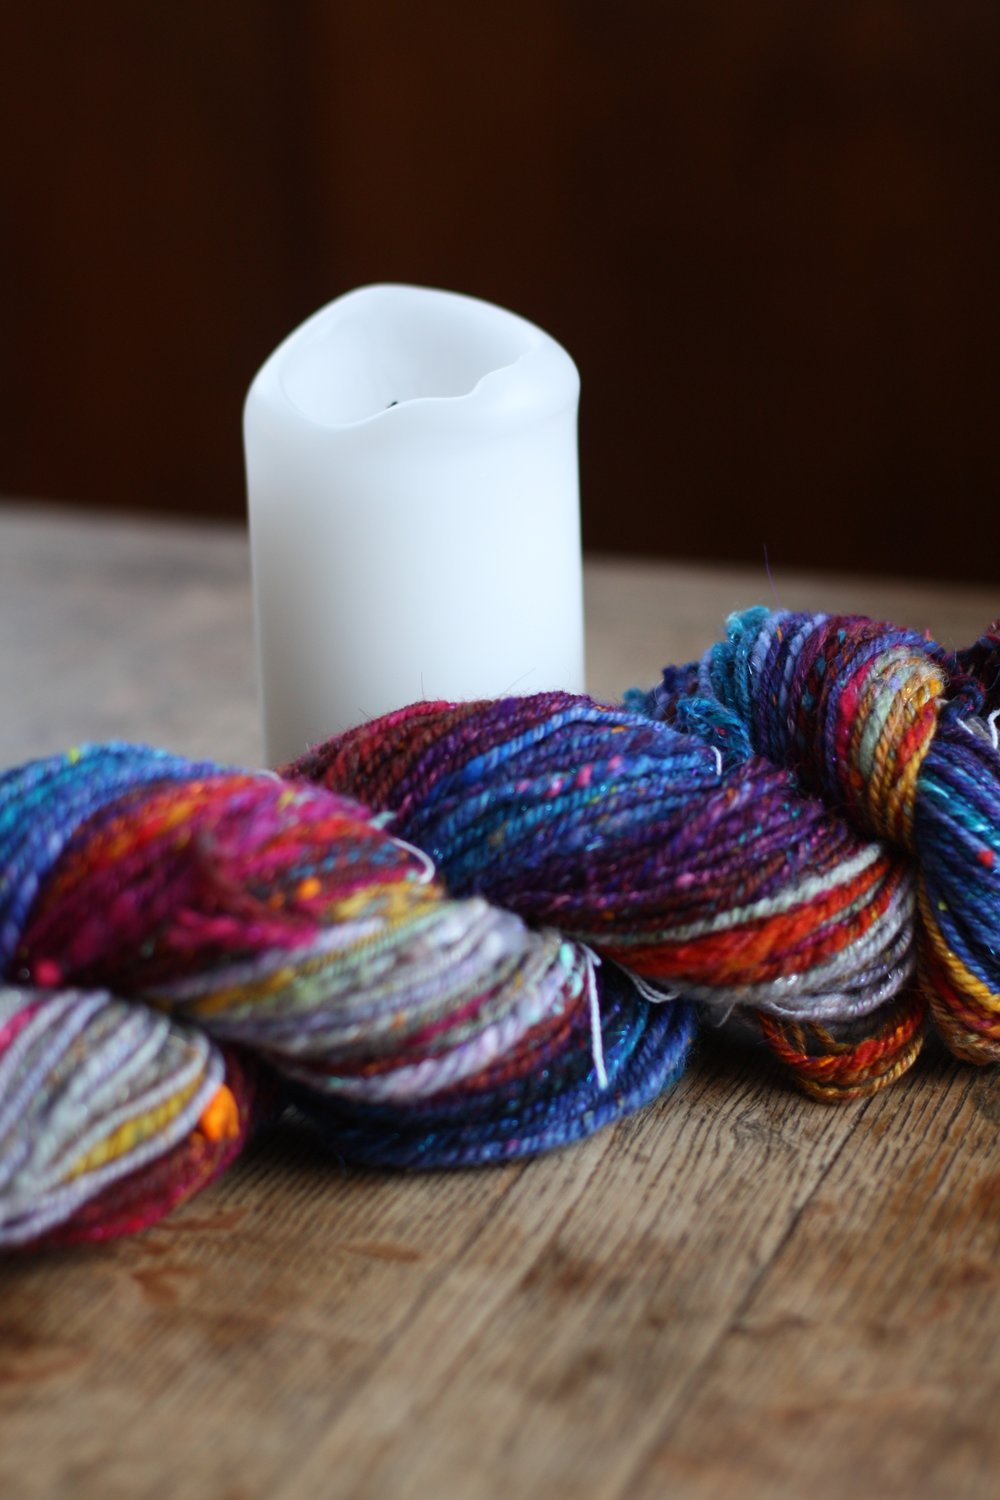 Worsted weight handspun yarn needs a pattern!  Do you have any recommendations?